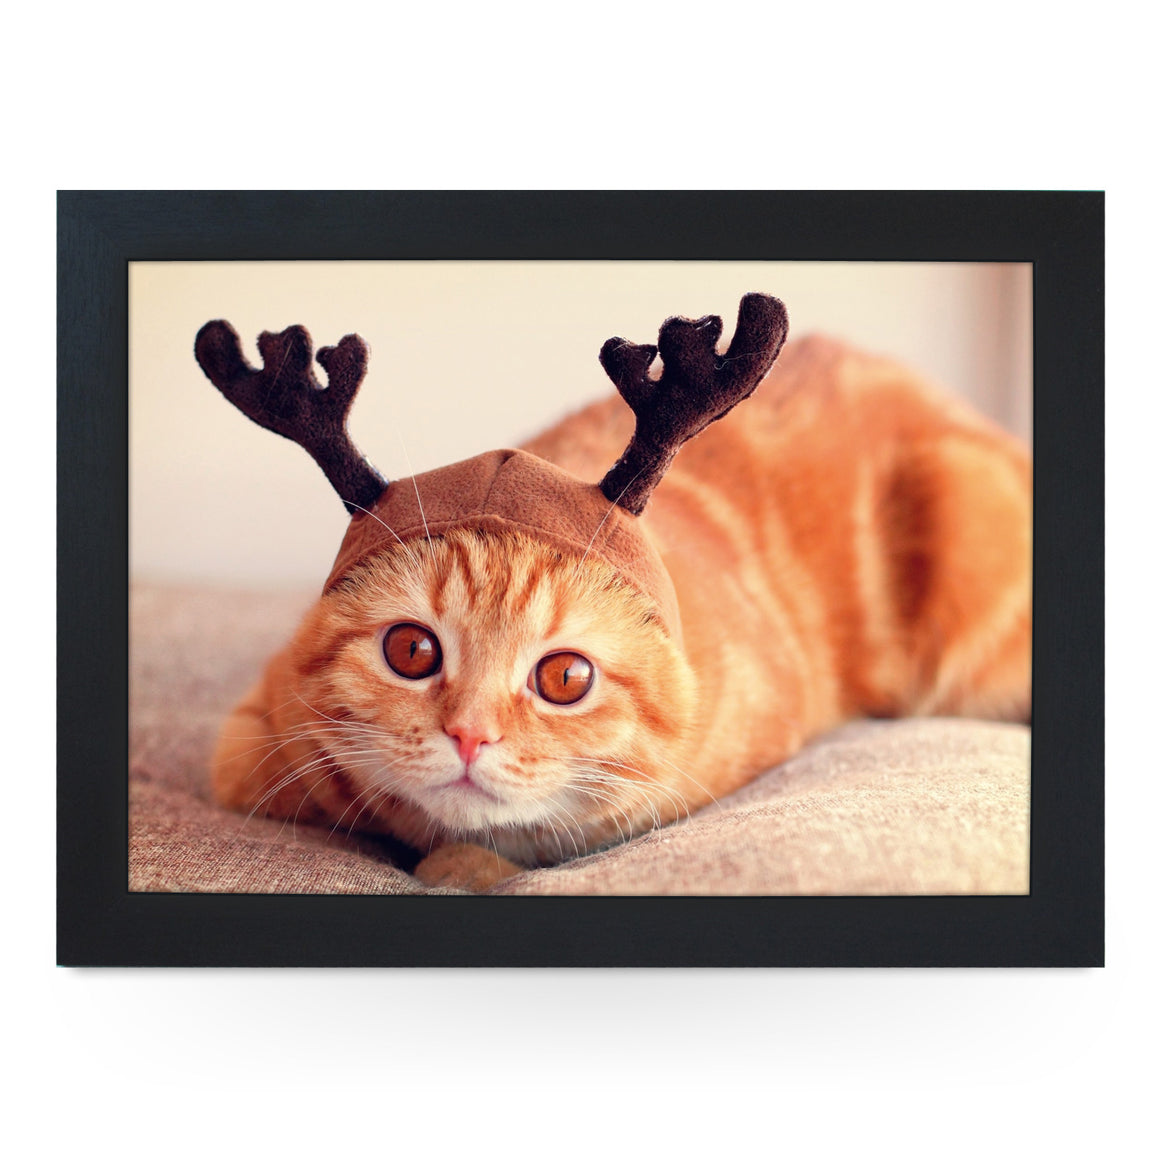 Cat Dressed As A Reindeer Lap Tray - L0233